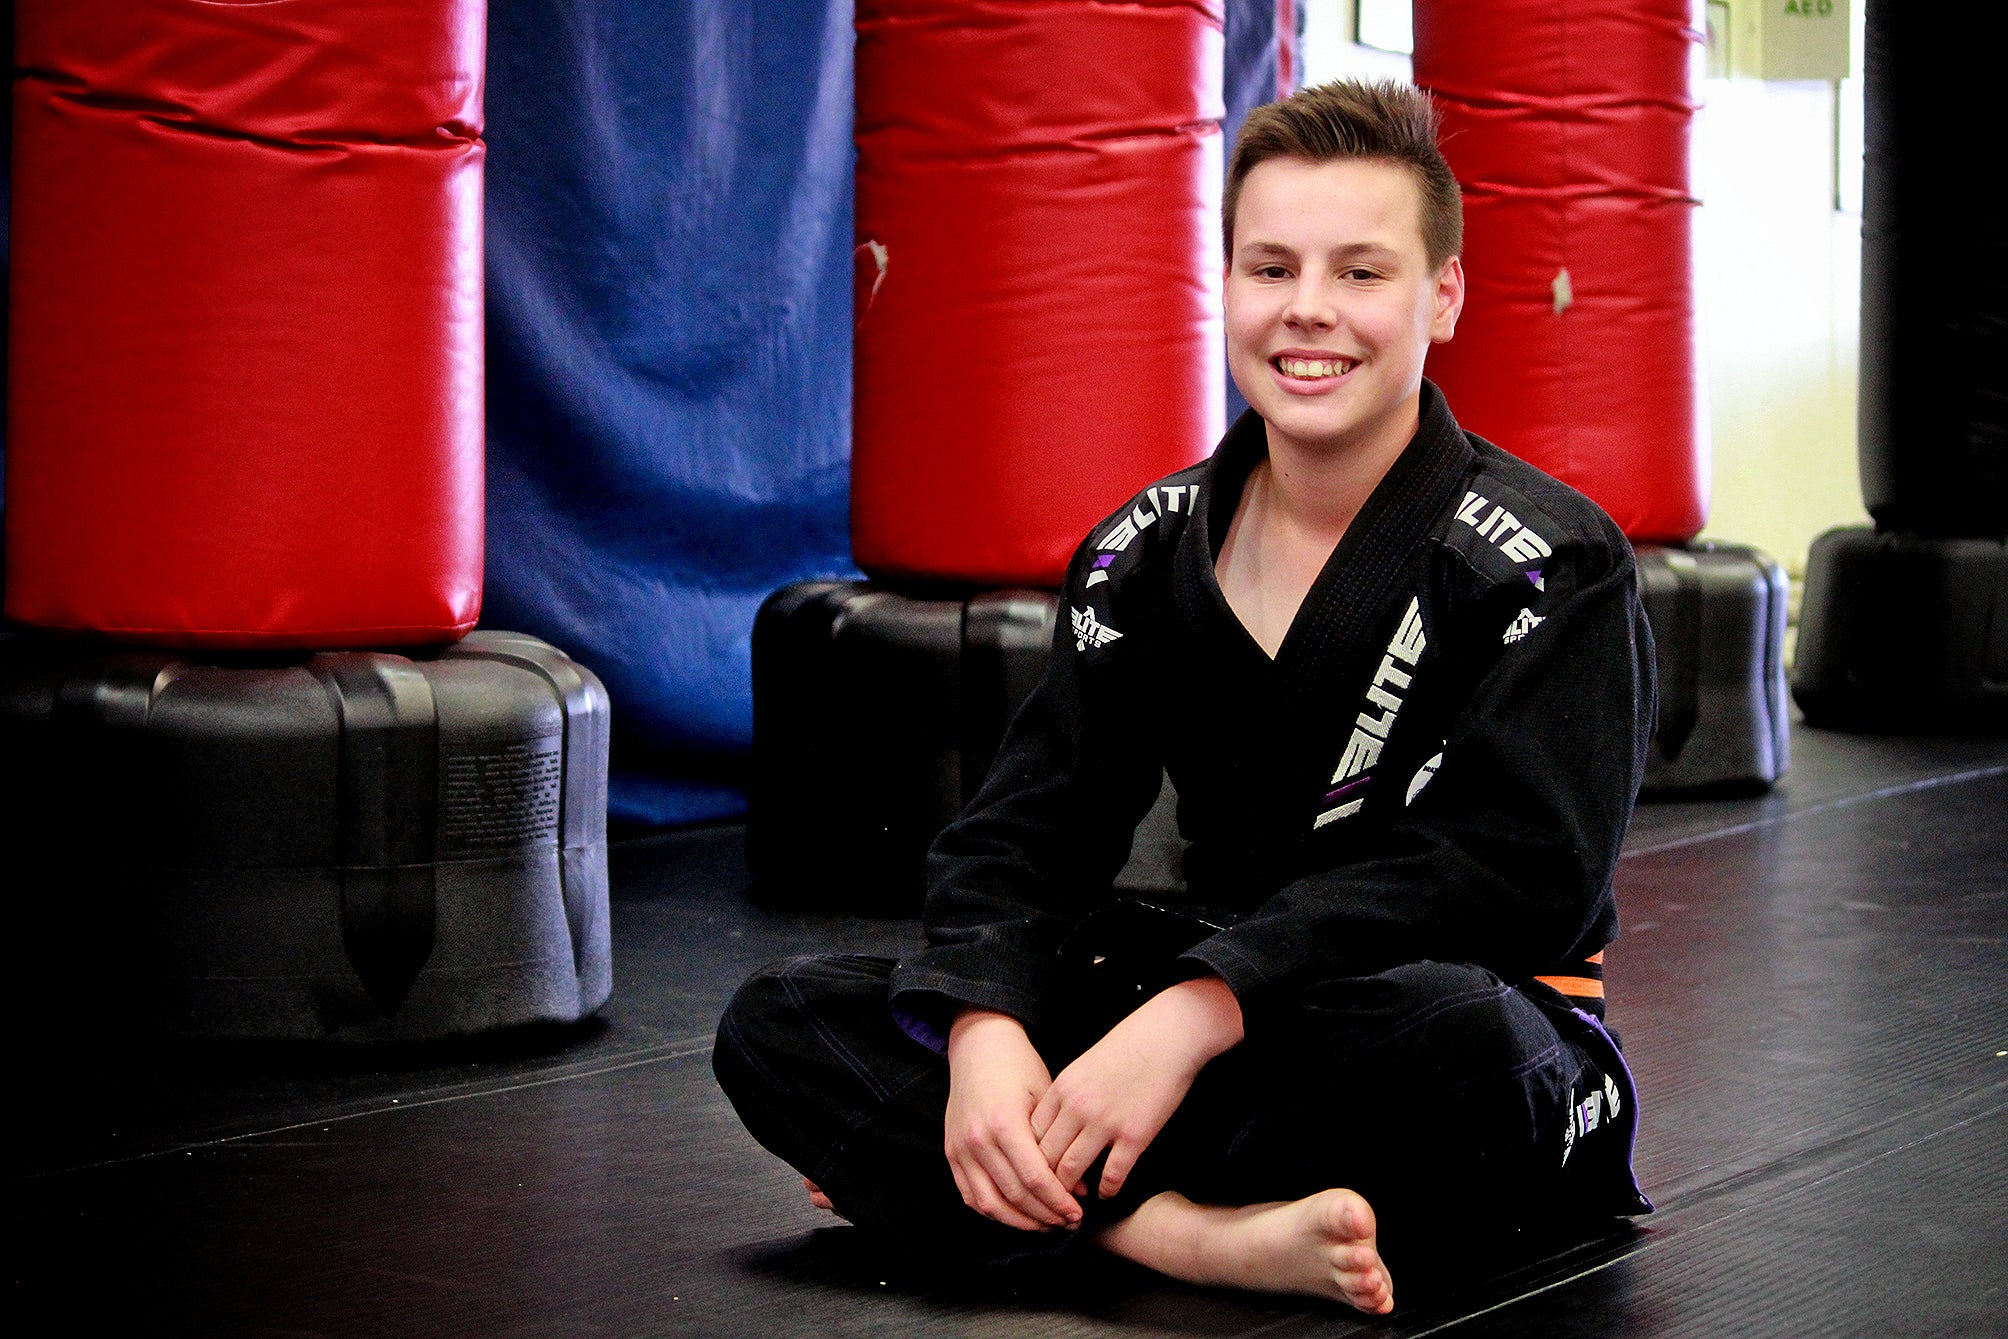 Elite Sports Team Elite Bjj Fighter Jack O'Toole  Image7